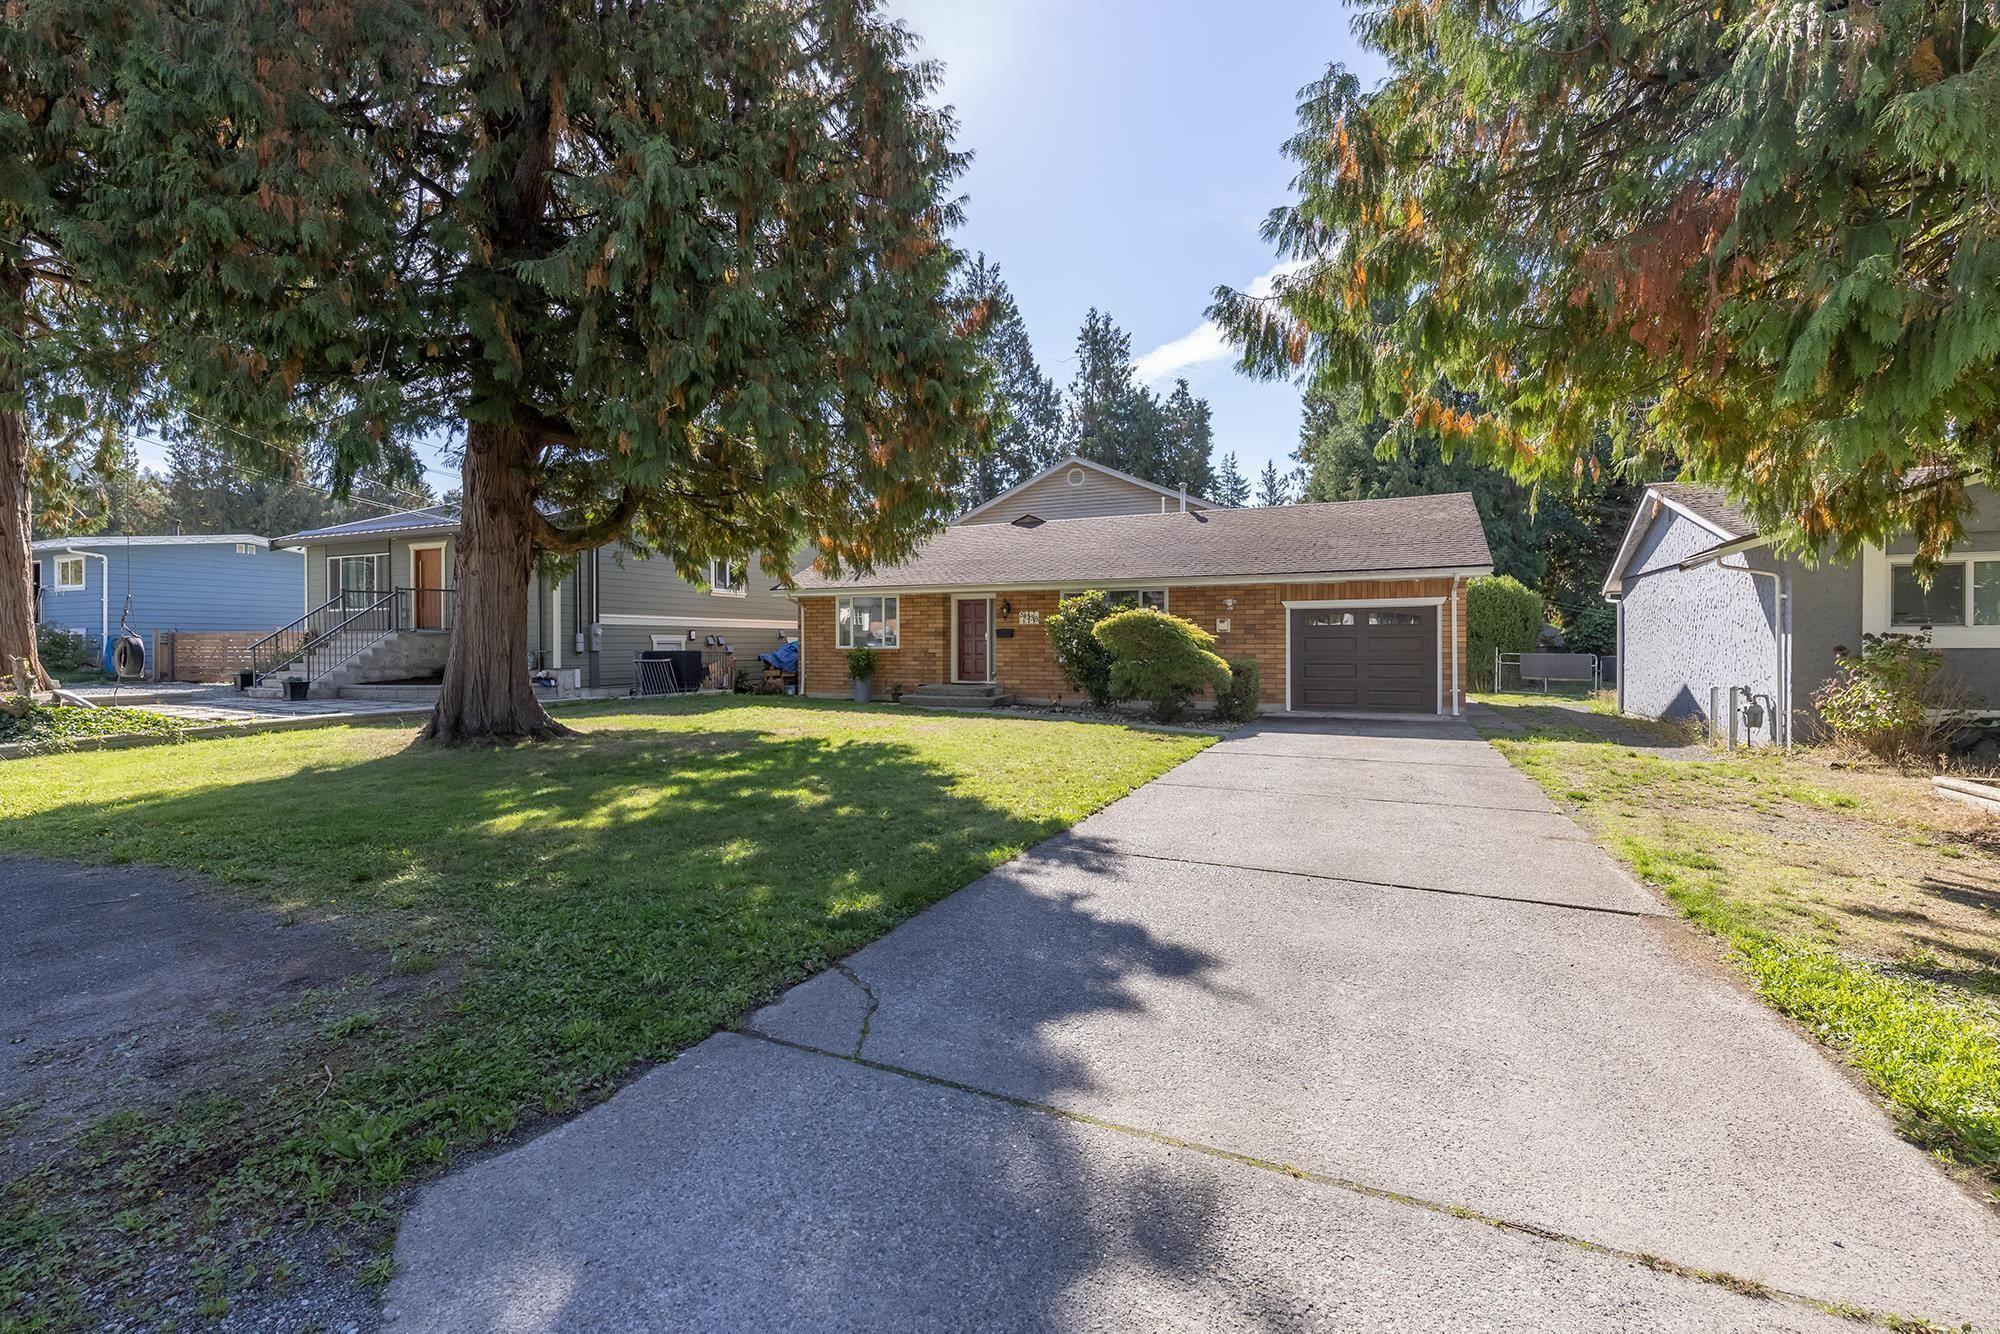 """Main Photo: 34558 KENT Avenue in Abbotsford: Abbotsford East House for sale in """"CLAYBURN / STENERSEN"""" : MLS®# R2621600"""